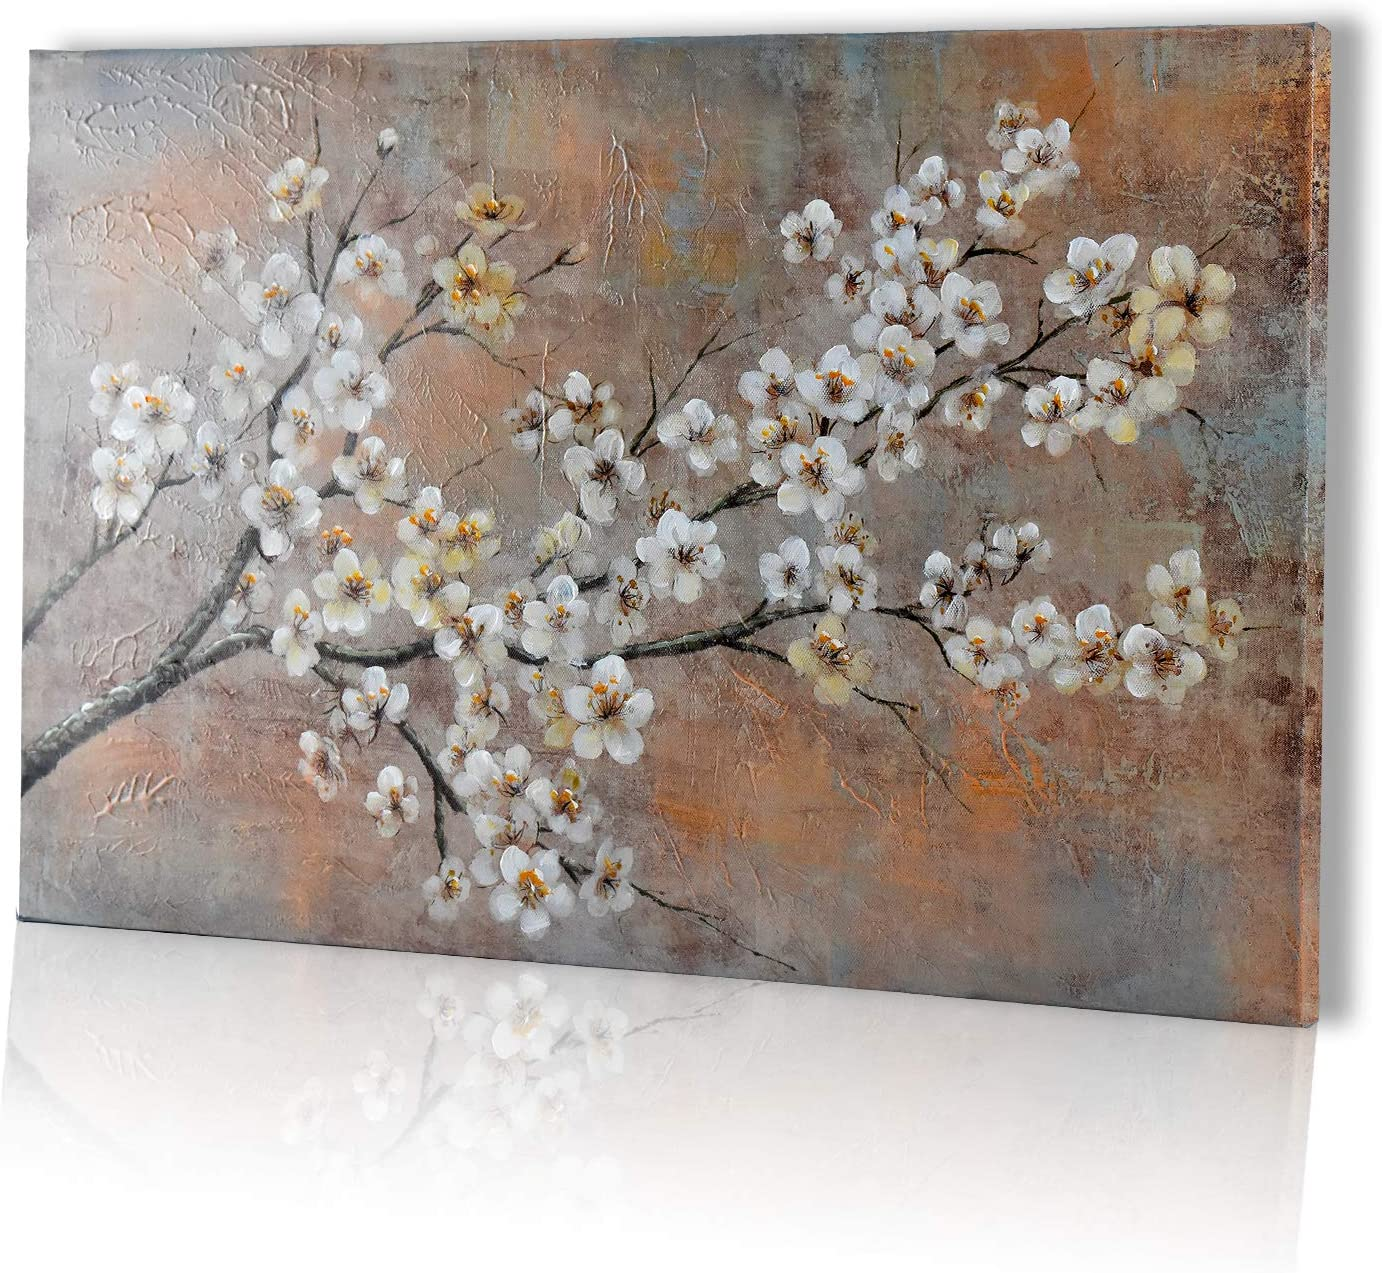 Mozing Wall art Oil Paintings 100/% Hand Painted Art Plum Blossom On Canvas Modern 3D Artwork Decorative Pictures For Home Living Room Bedroom Office(15.7x23.6Inchx3pcs)